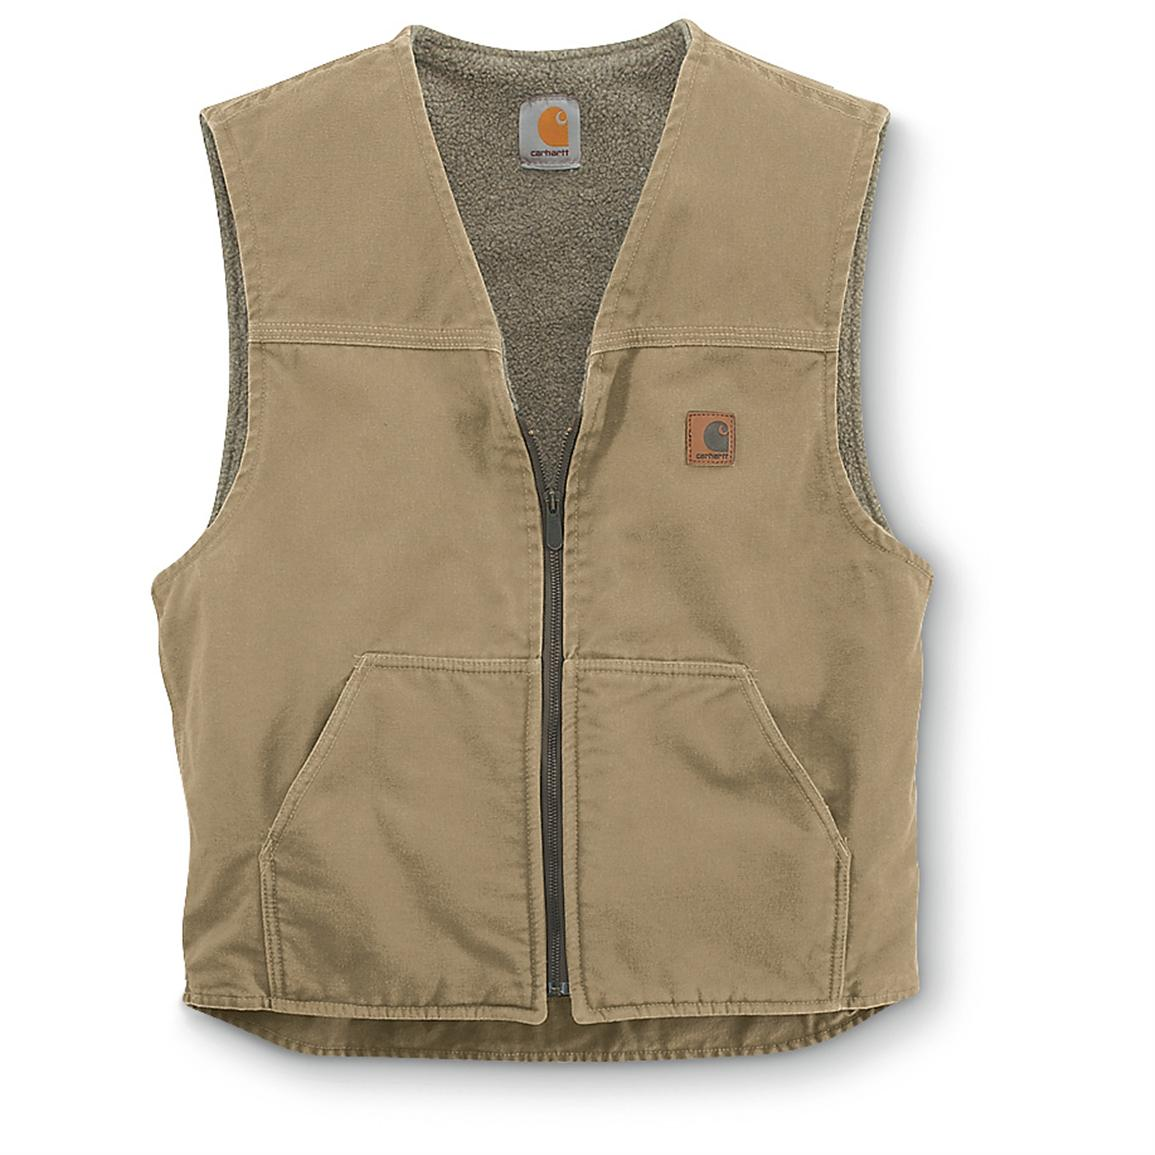 Carhartt Men's Sandstone Rugged Sherpa-Lined Vest, Frontier Brown